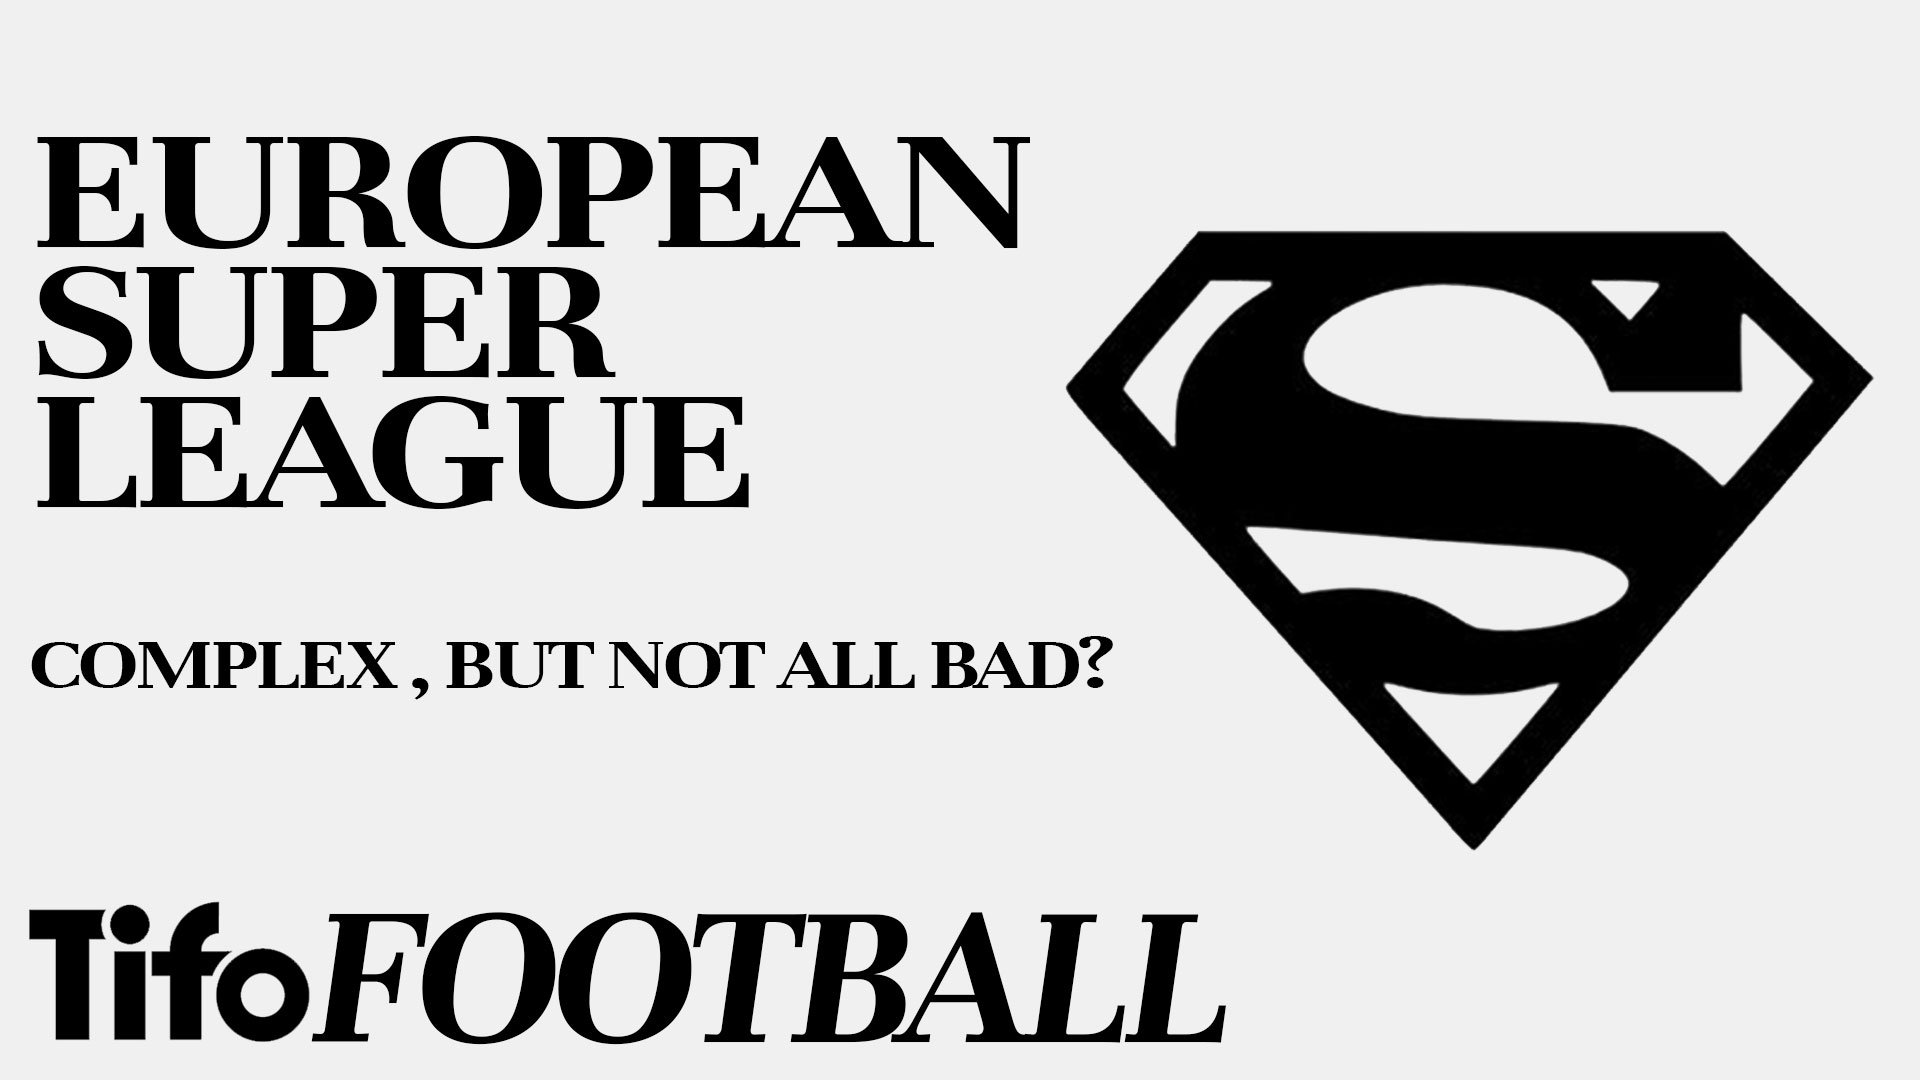 The pros and cons of a European Super League